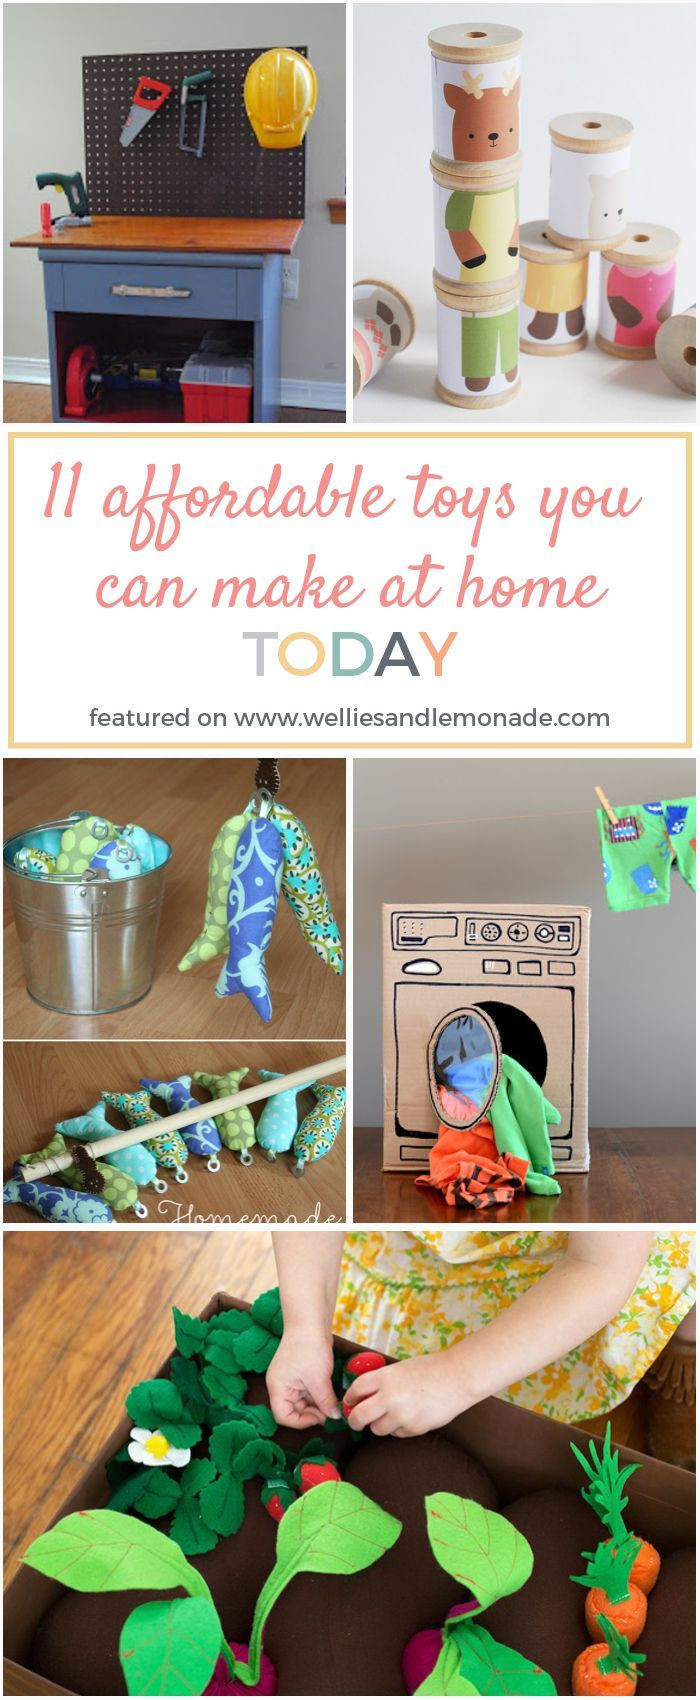 Best ideas about DIY Kids Toys . Save or Pin 1000 ideas about Homemade Kids Toys on Pinterest Now.